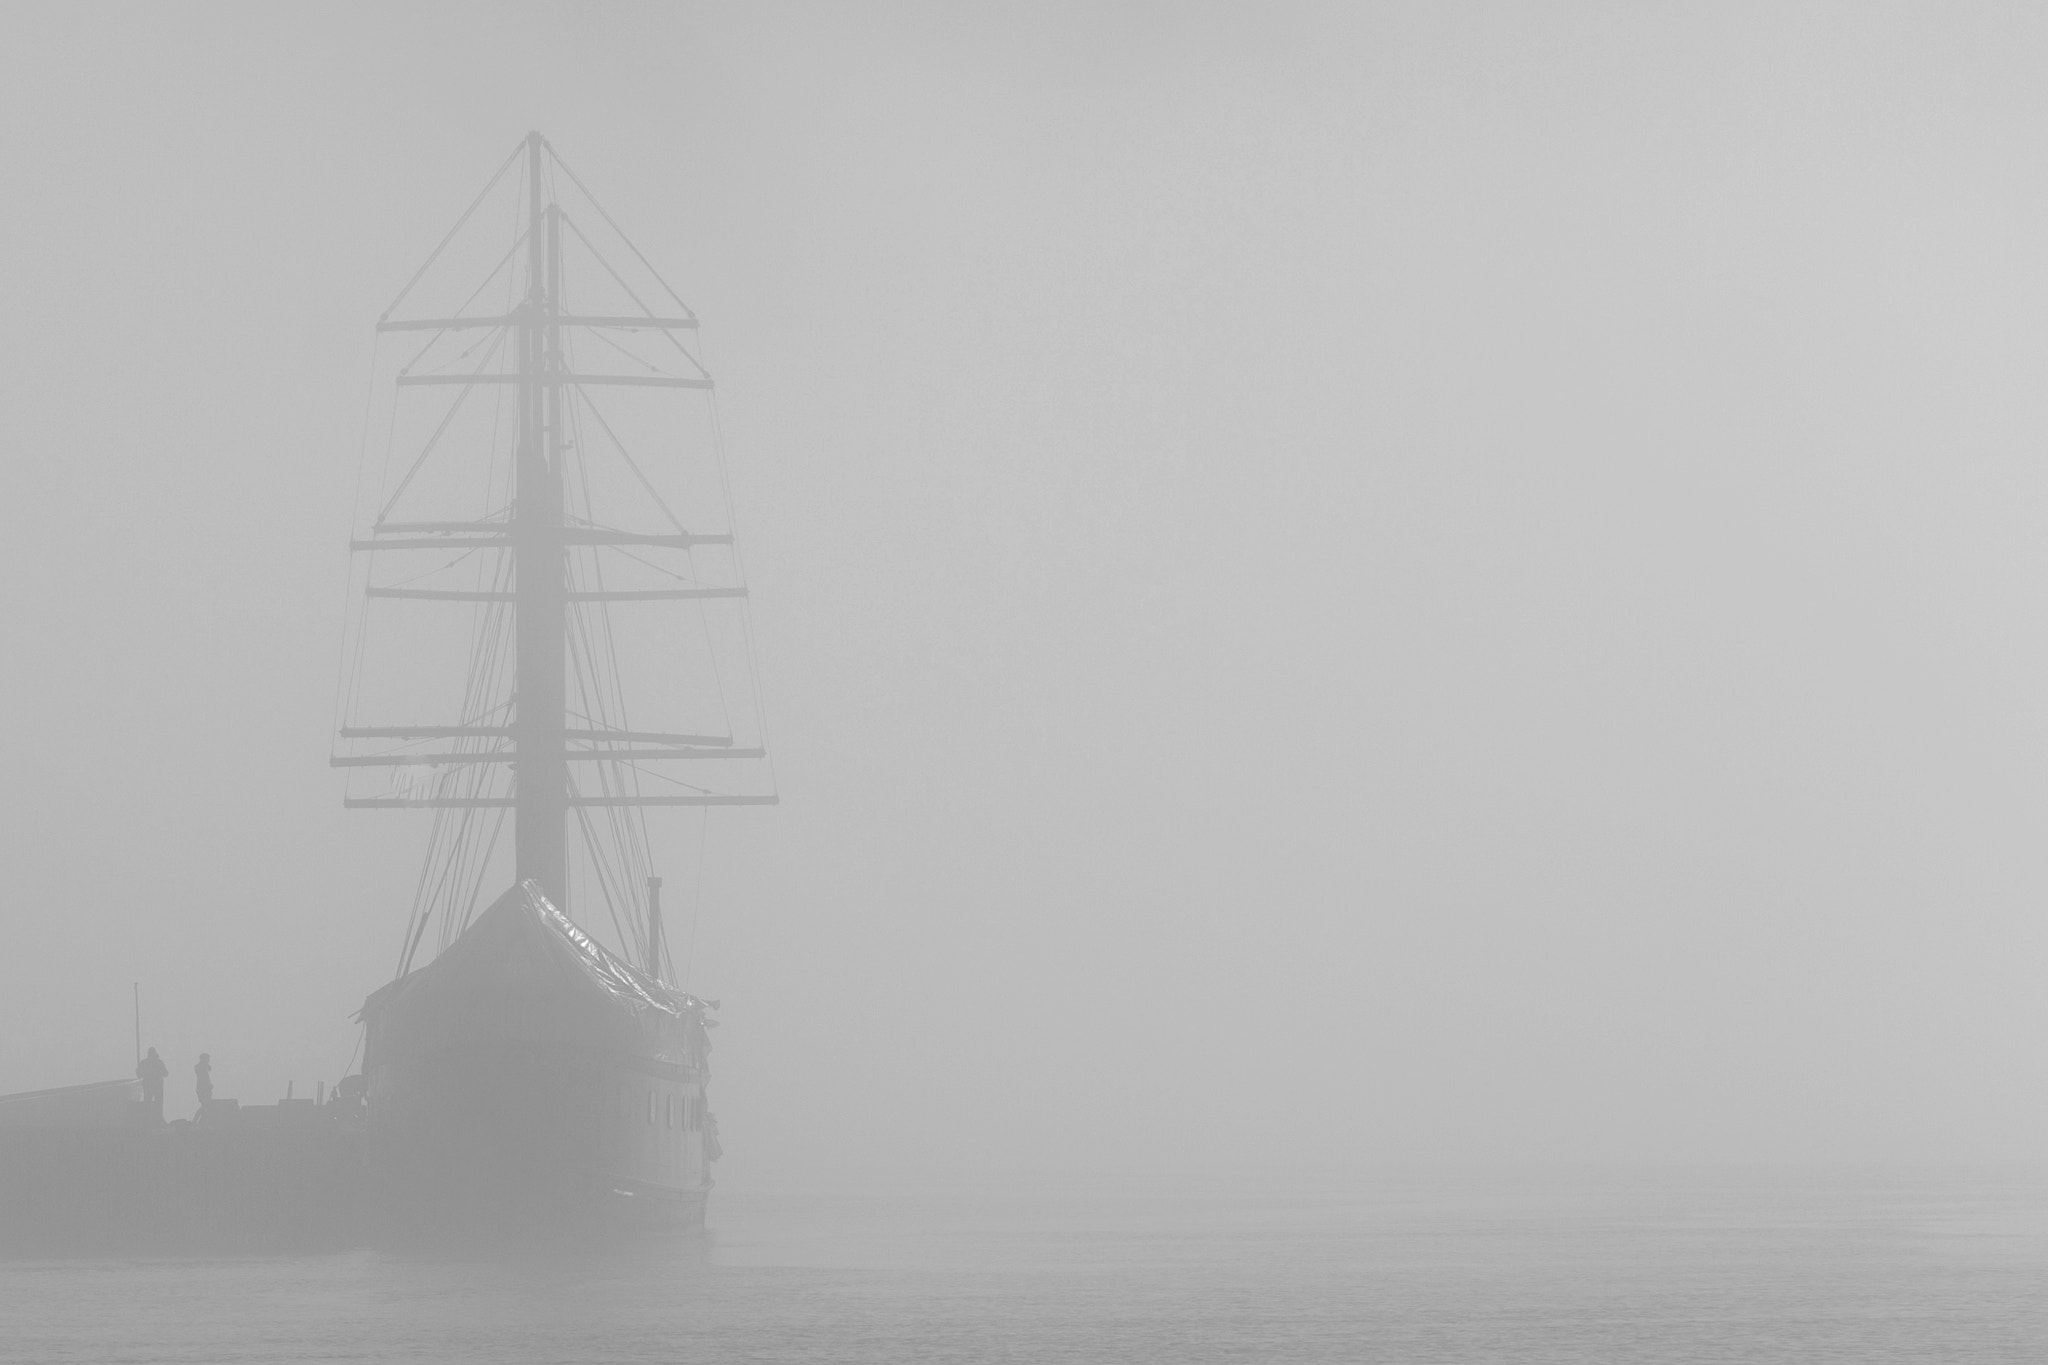 Photograph Foggy ships II by Gerhard Emil Schjelderup on 500px